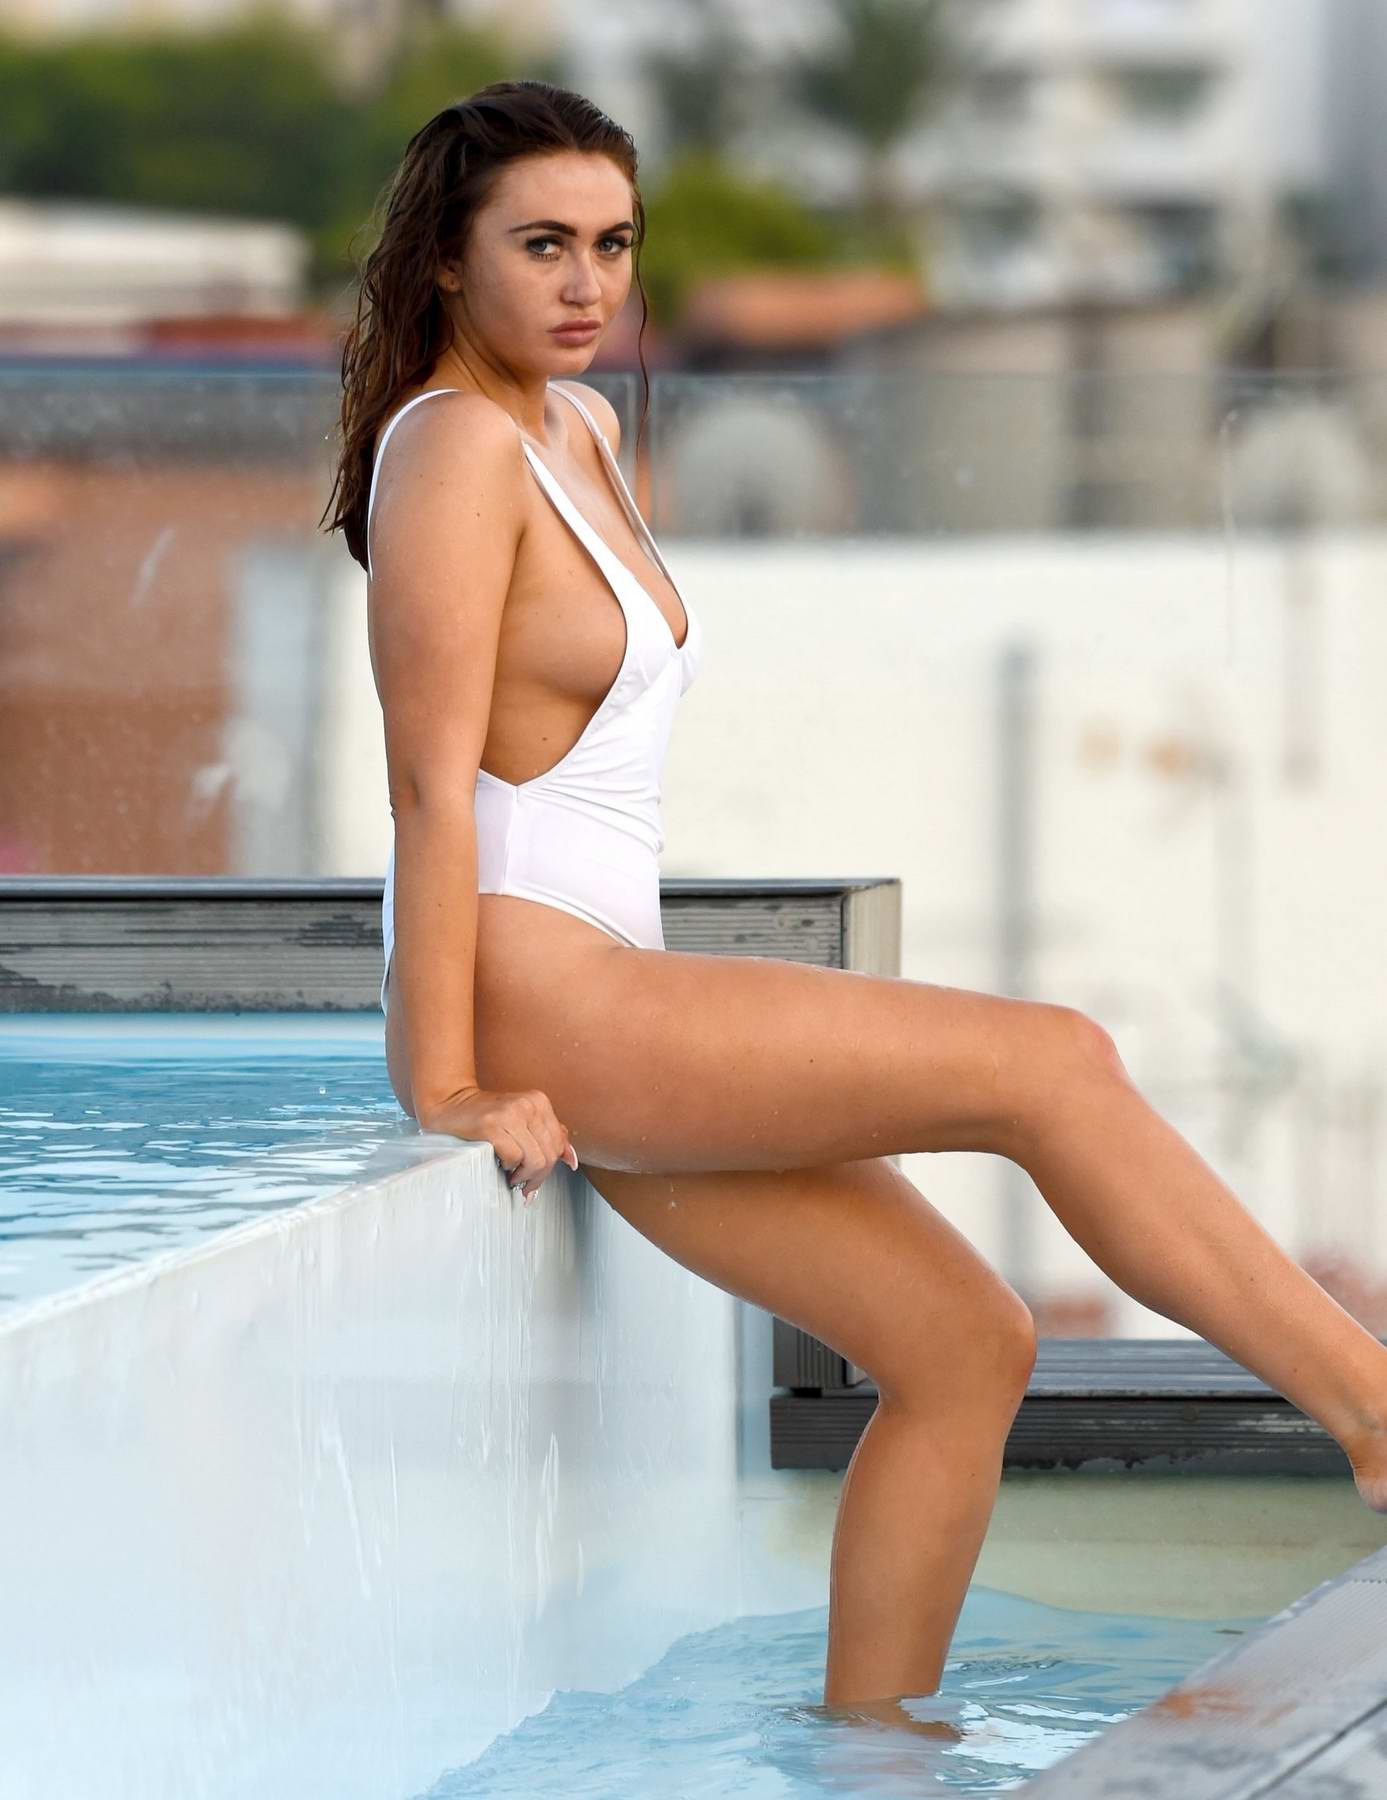 Charlotte Dawson in a white swimsuit for a photoshoot in Malaga, Spain